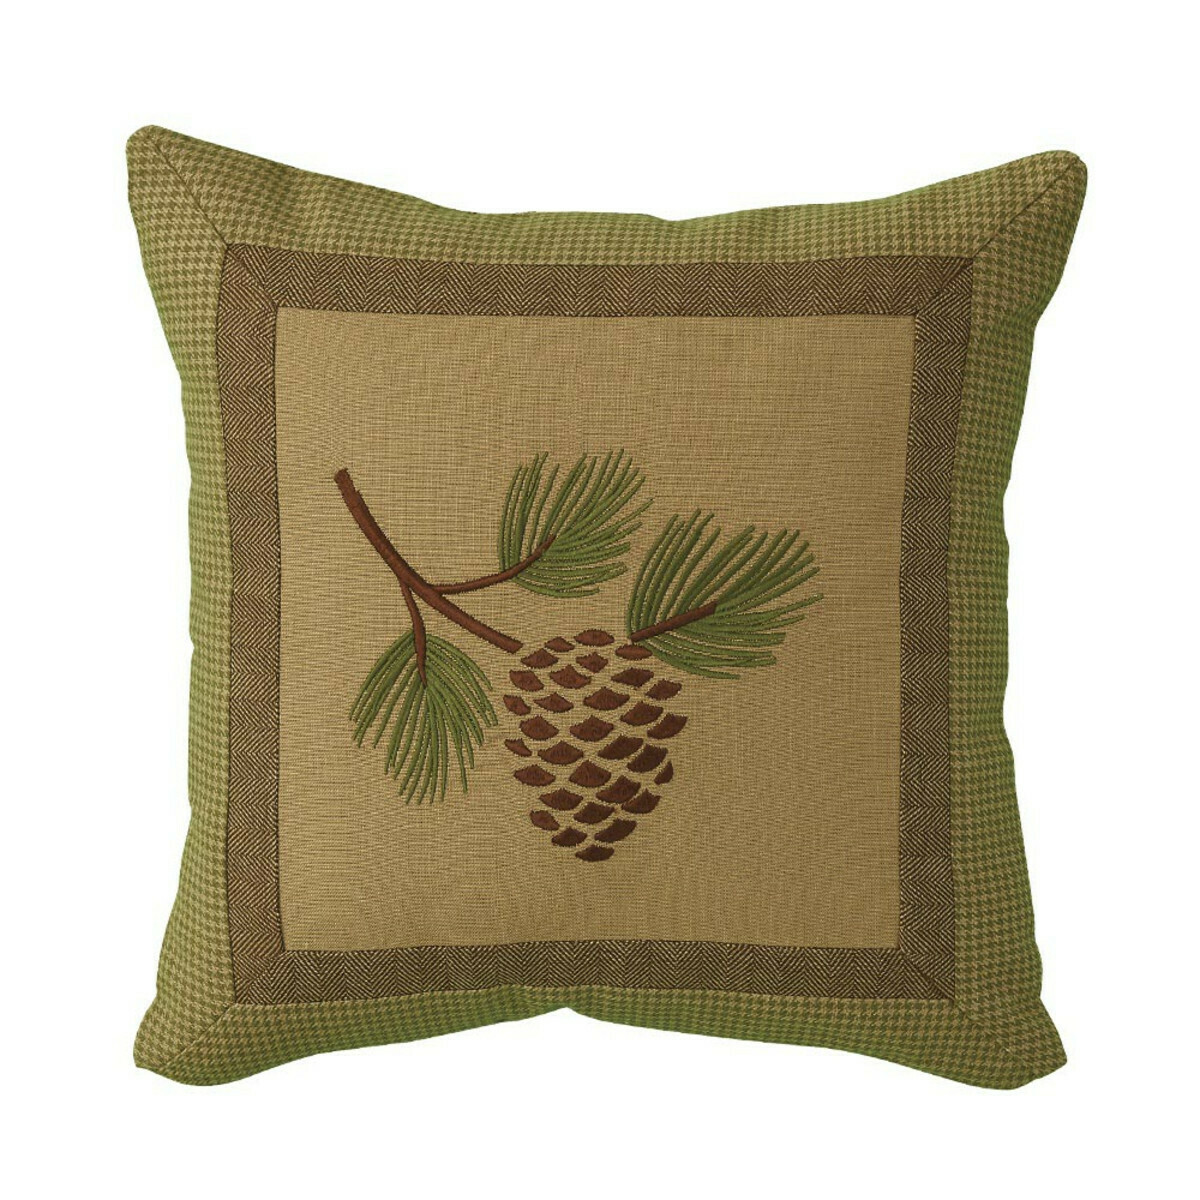 "Pineview 16"" Pillow"